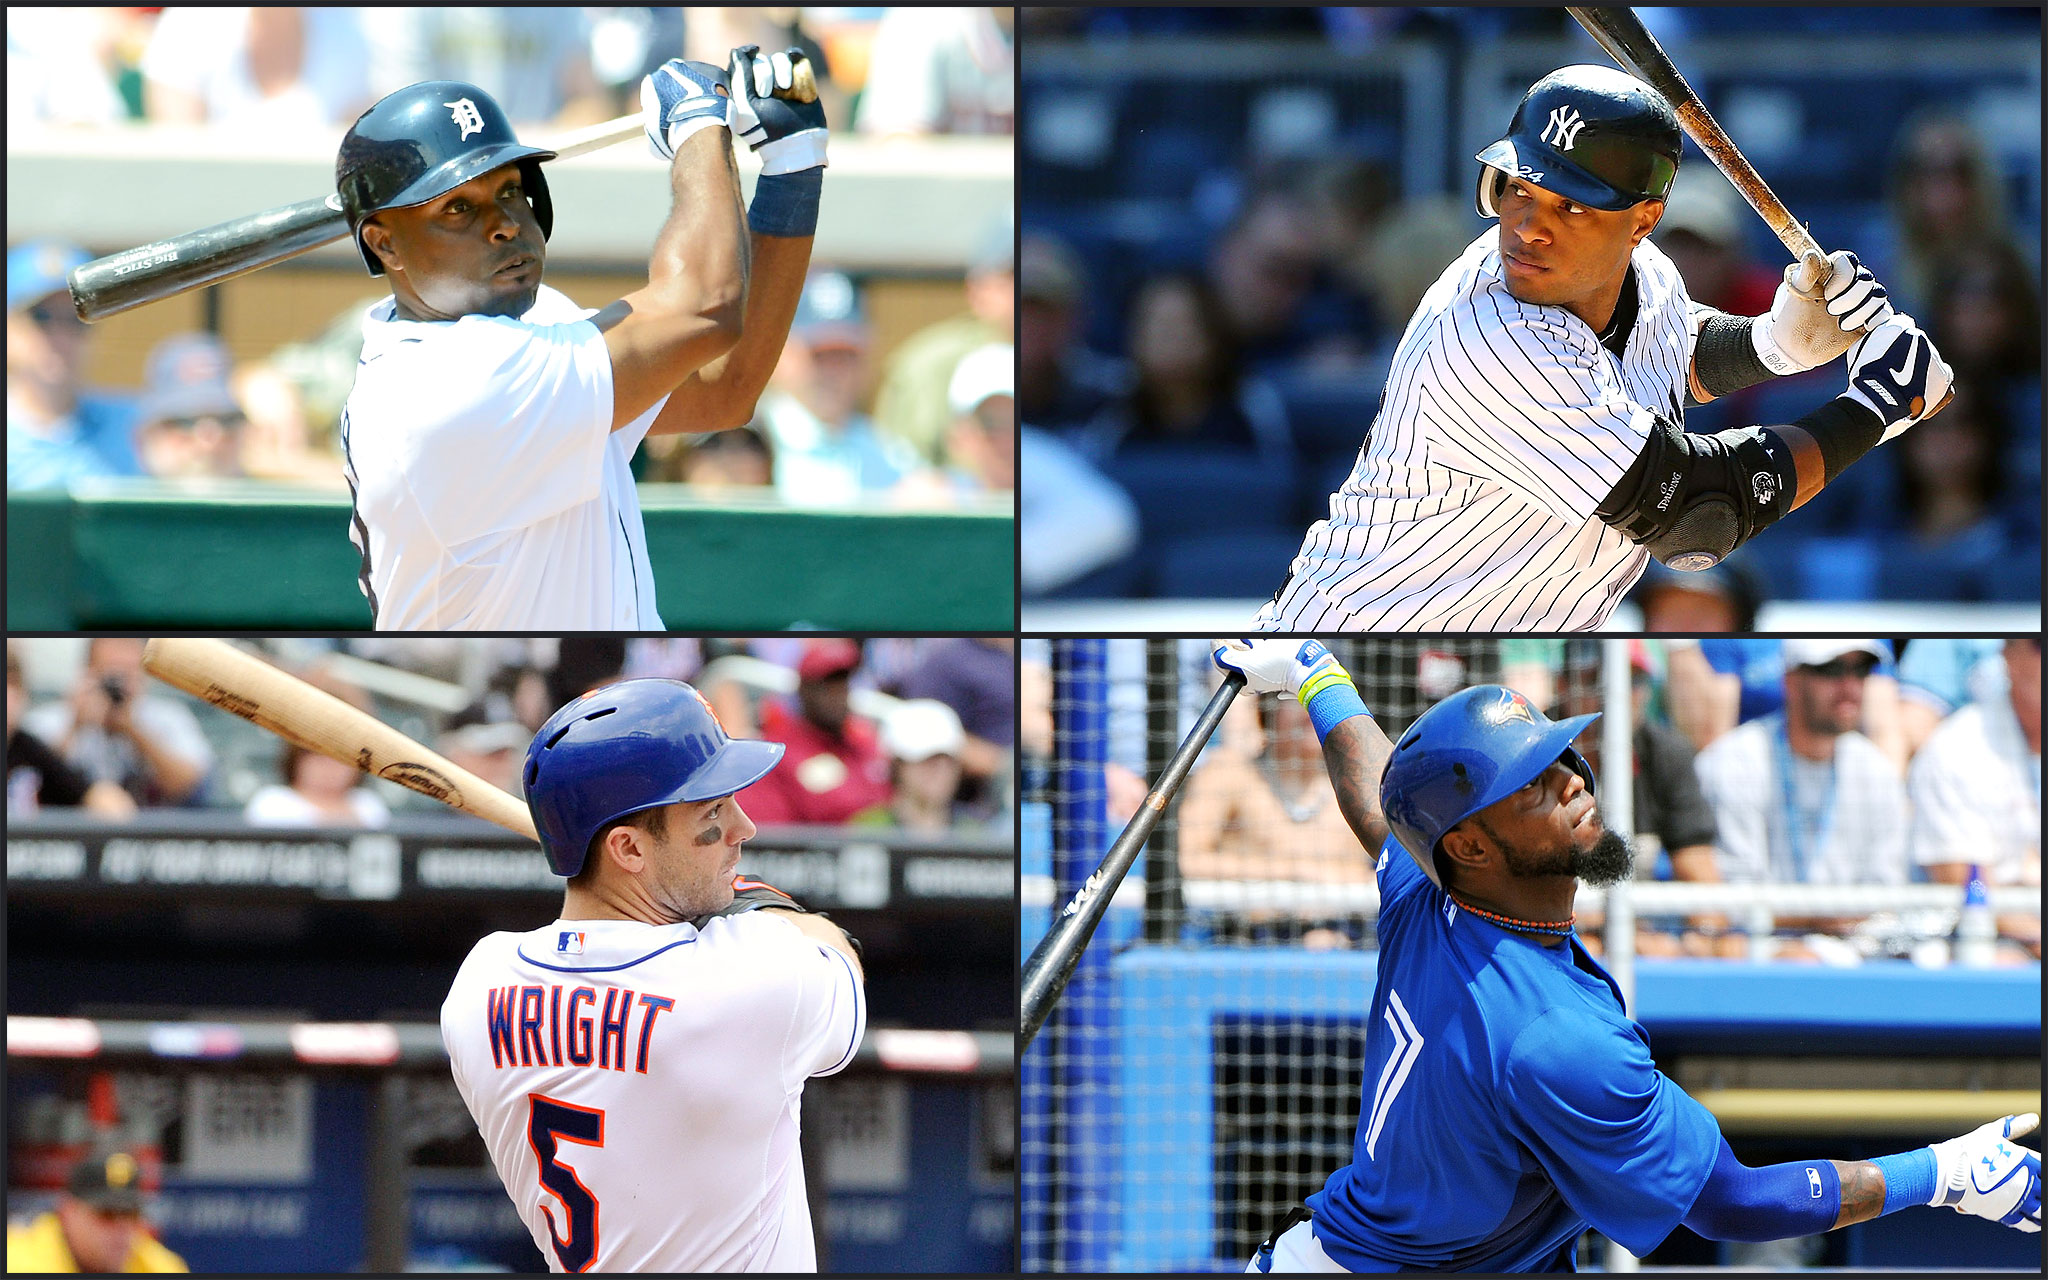 Torii Hunter, Robinson Cano, David Wright, Jose Reyes